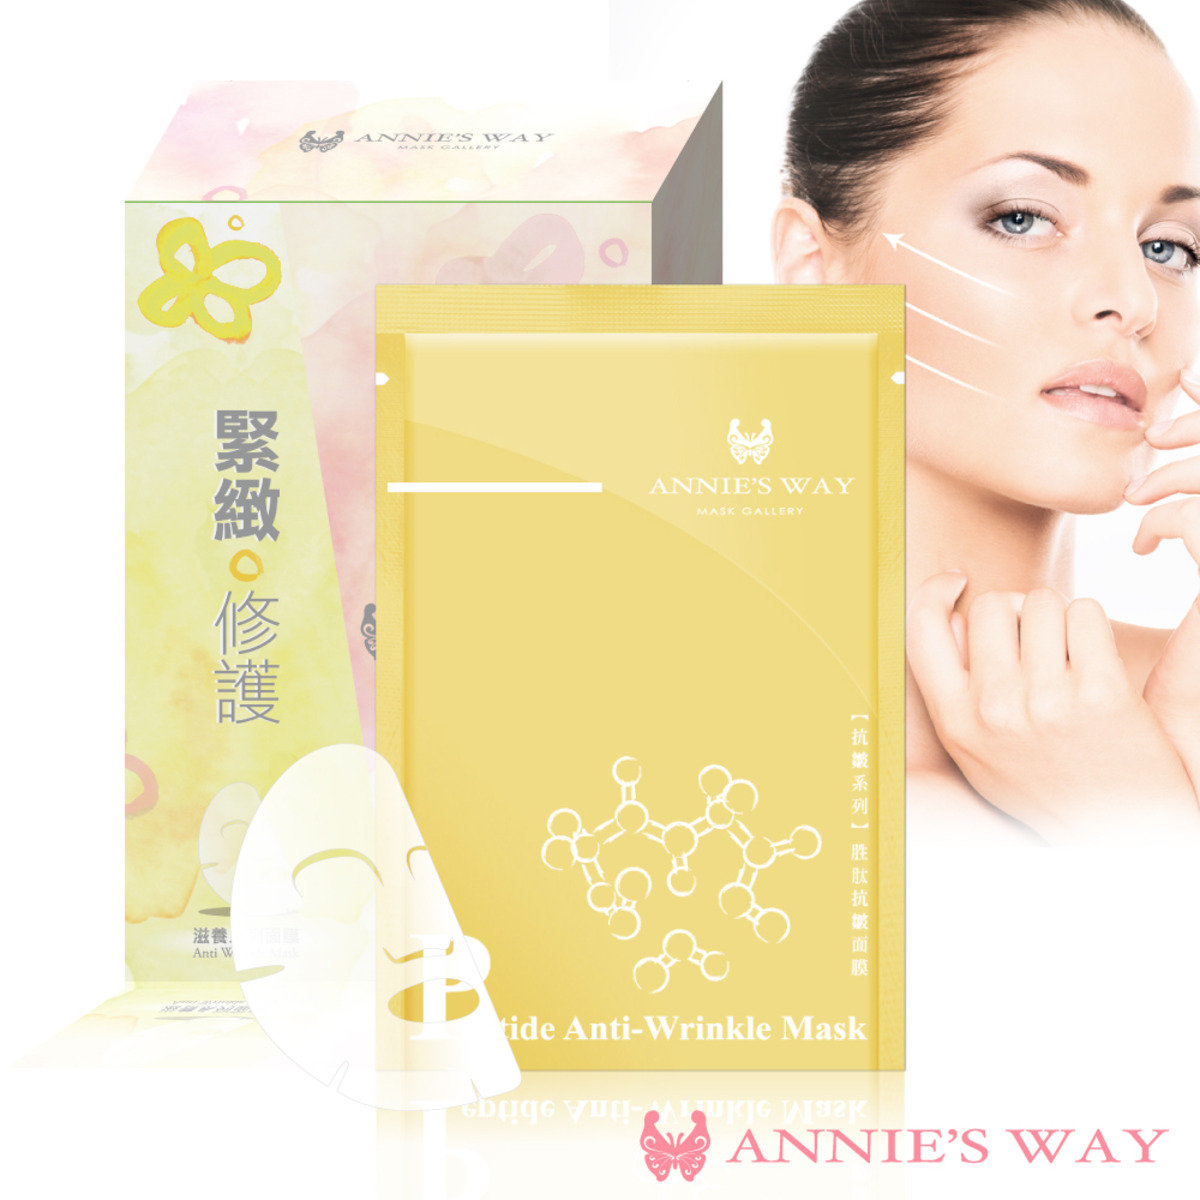 Anti-Wrinkle Mask Set - 10 pcs